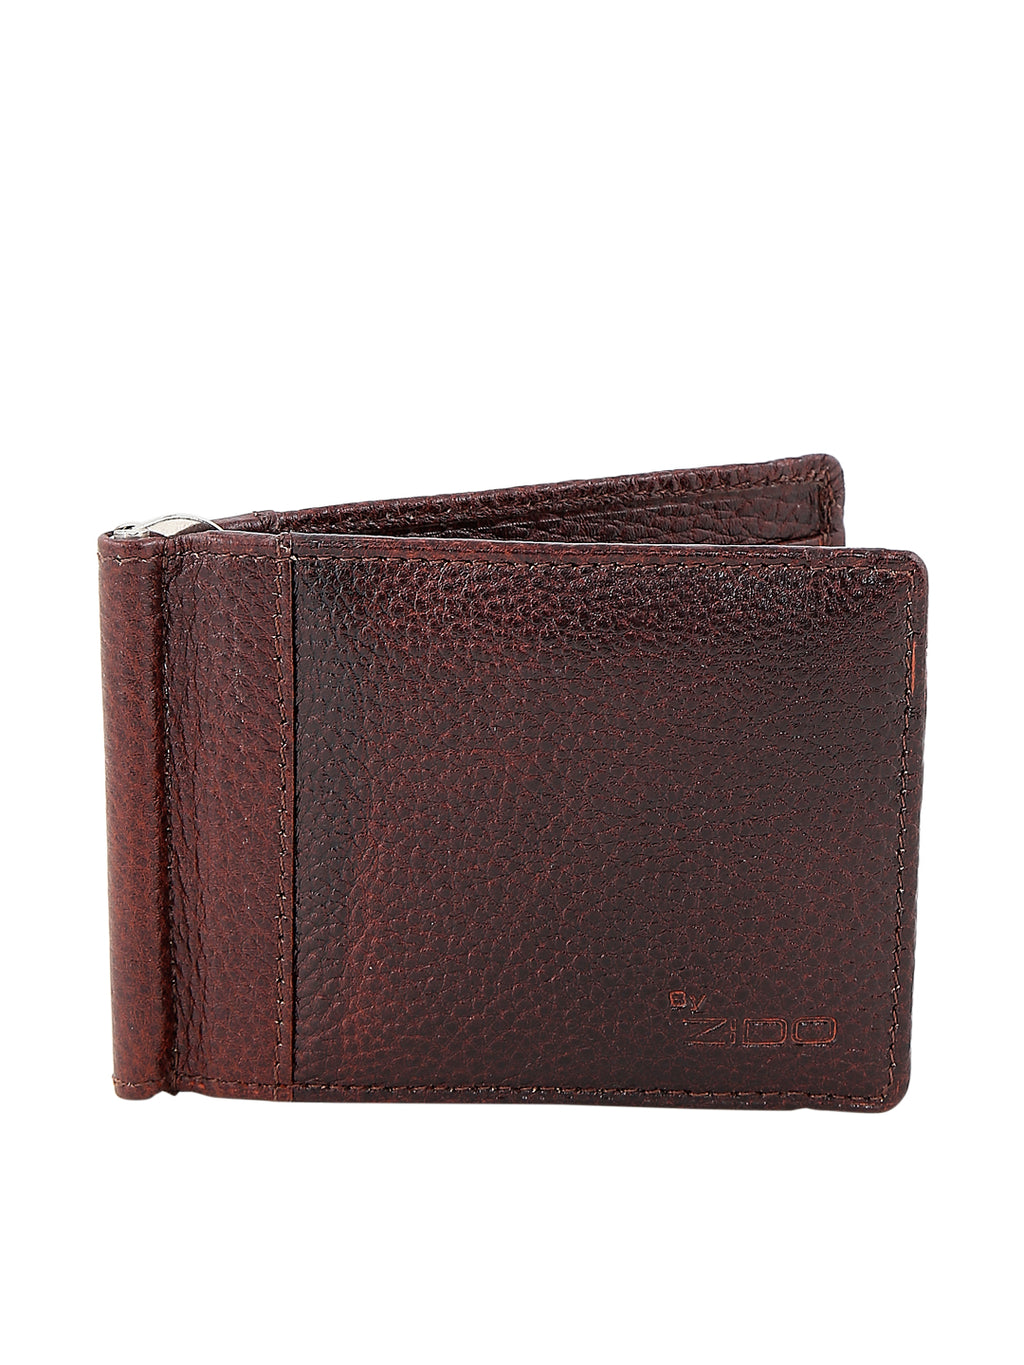 Zido Wallet for Men WLT050/1